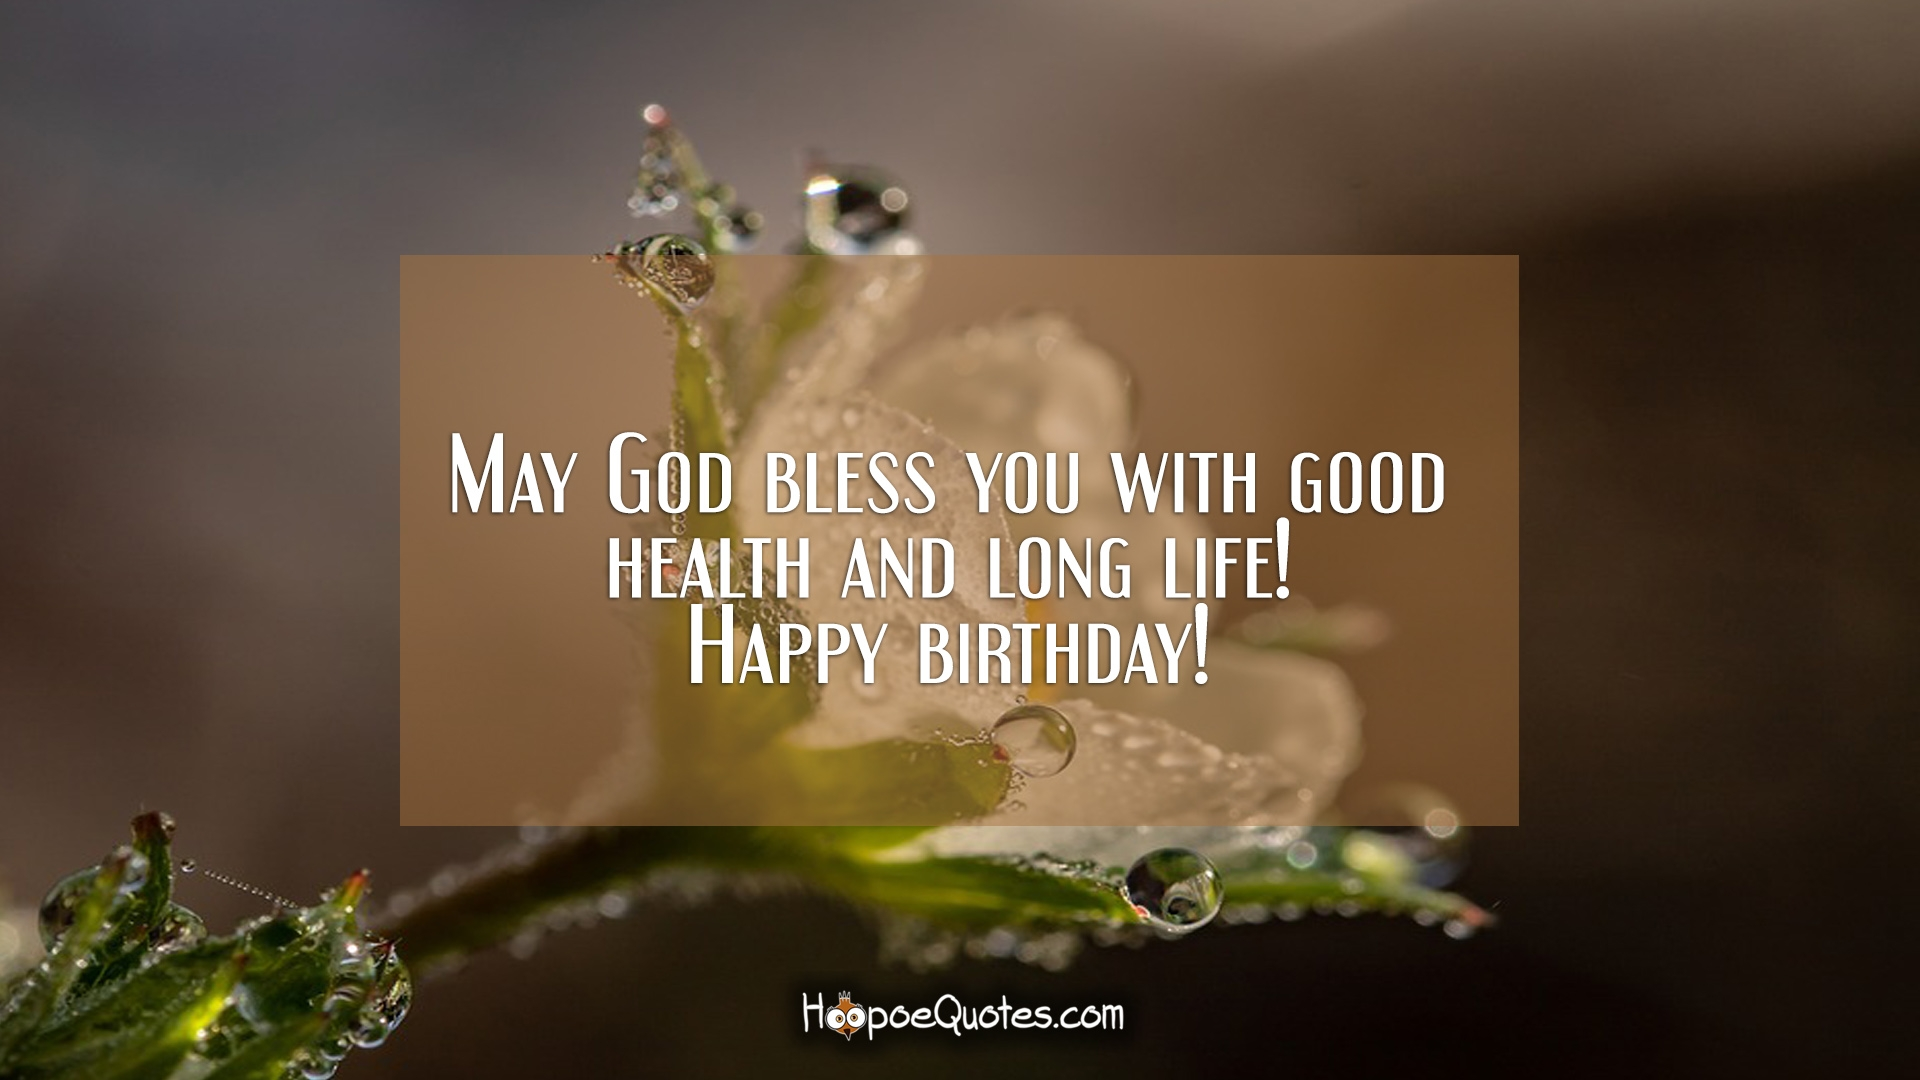 May God Bless You With Good Health And Long Life Happy Birthday Hoopoequotes